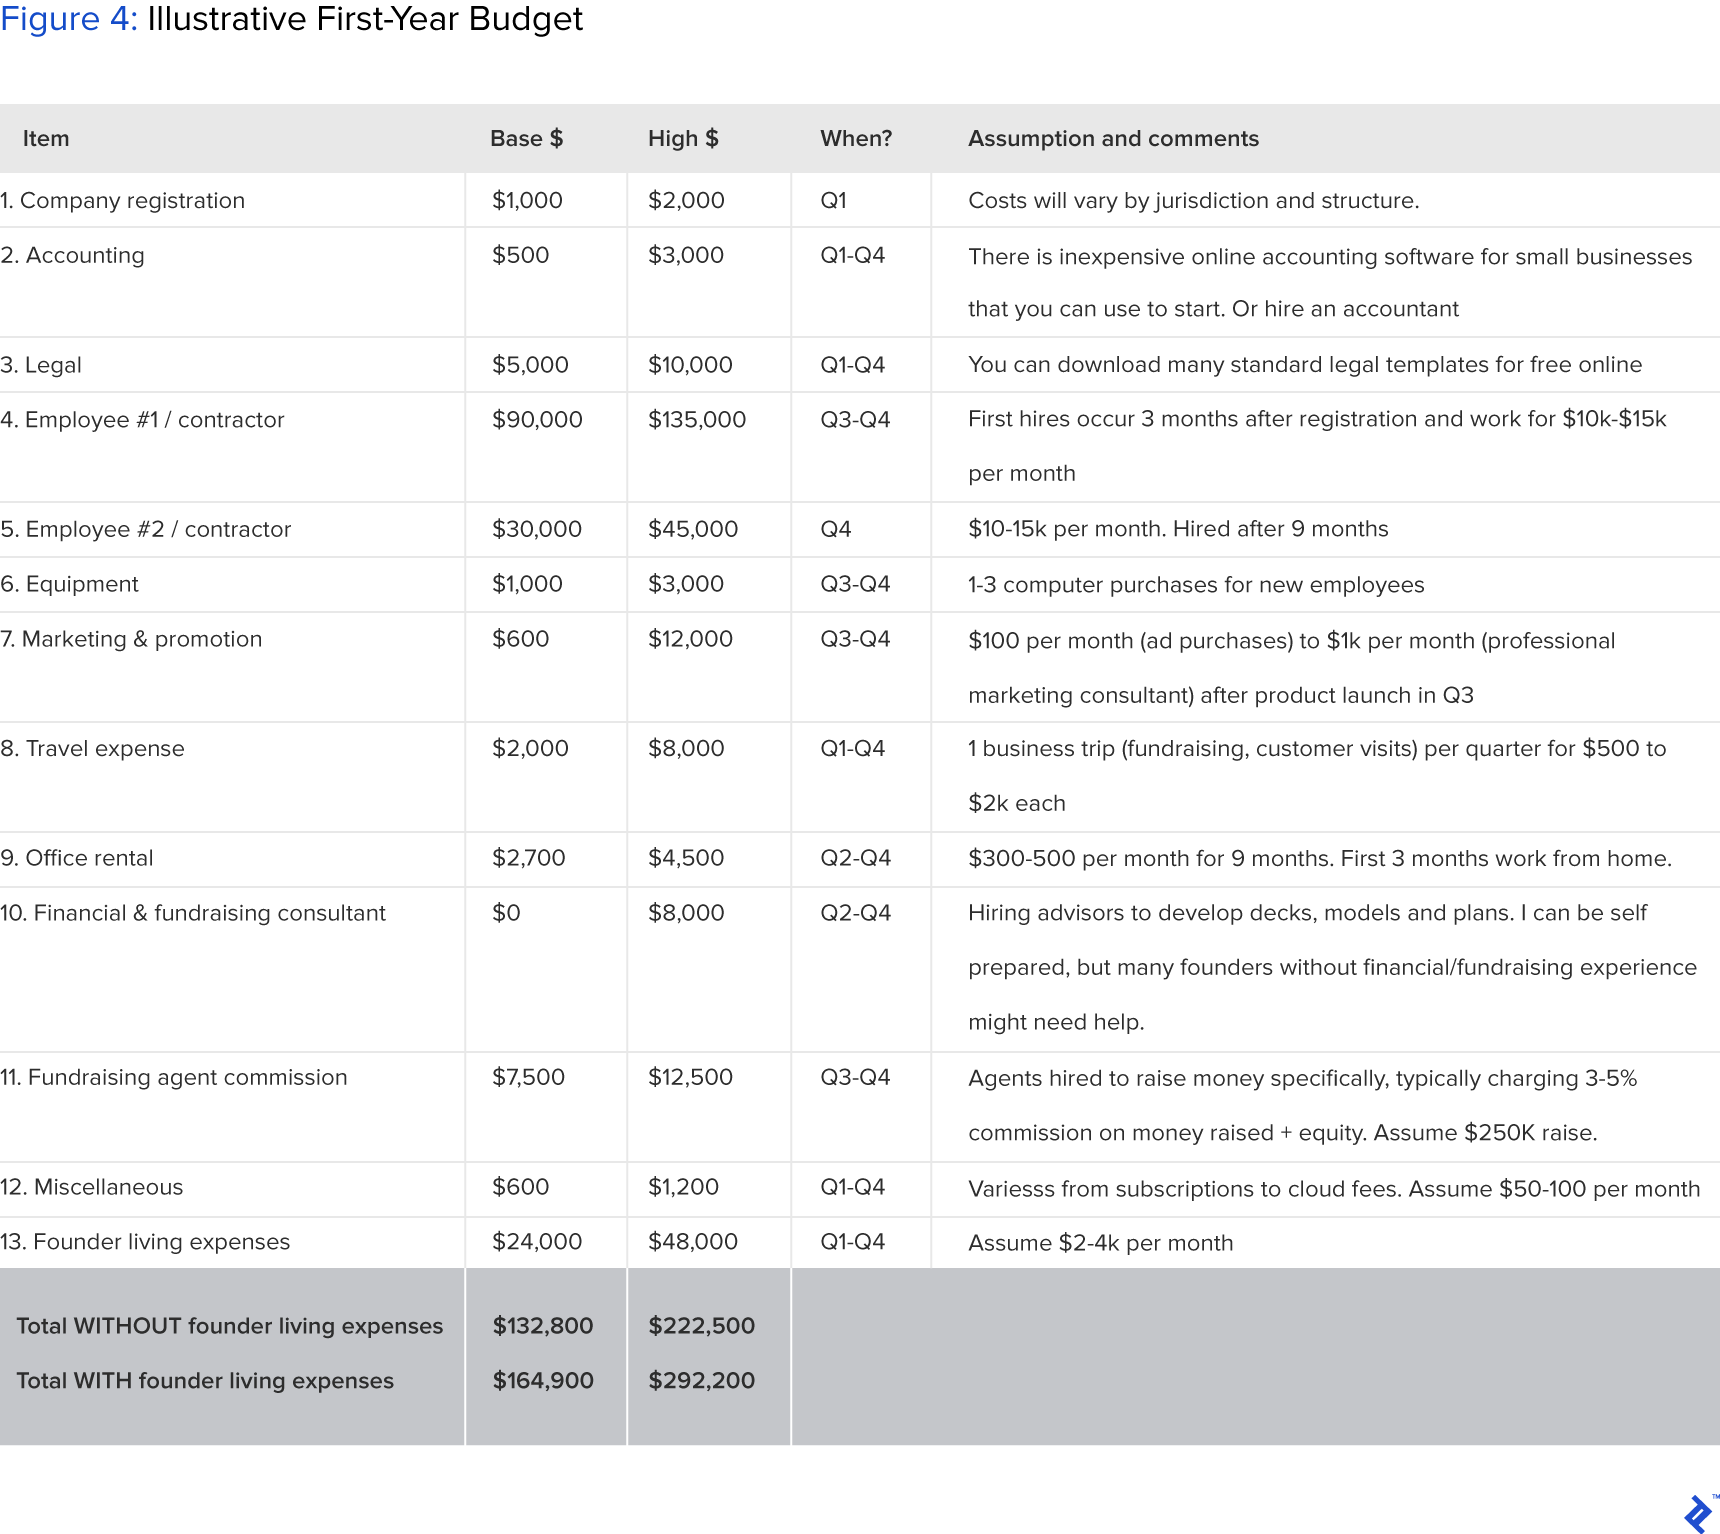 detailed table showing a sample first-year budget